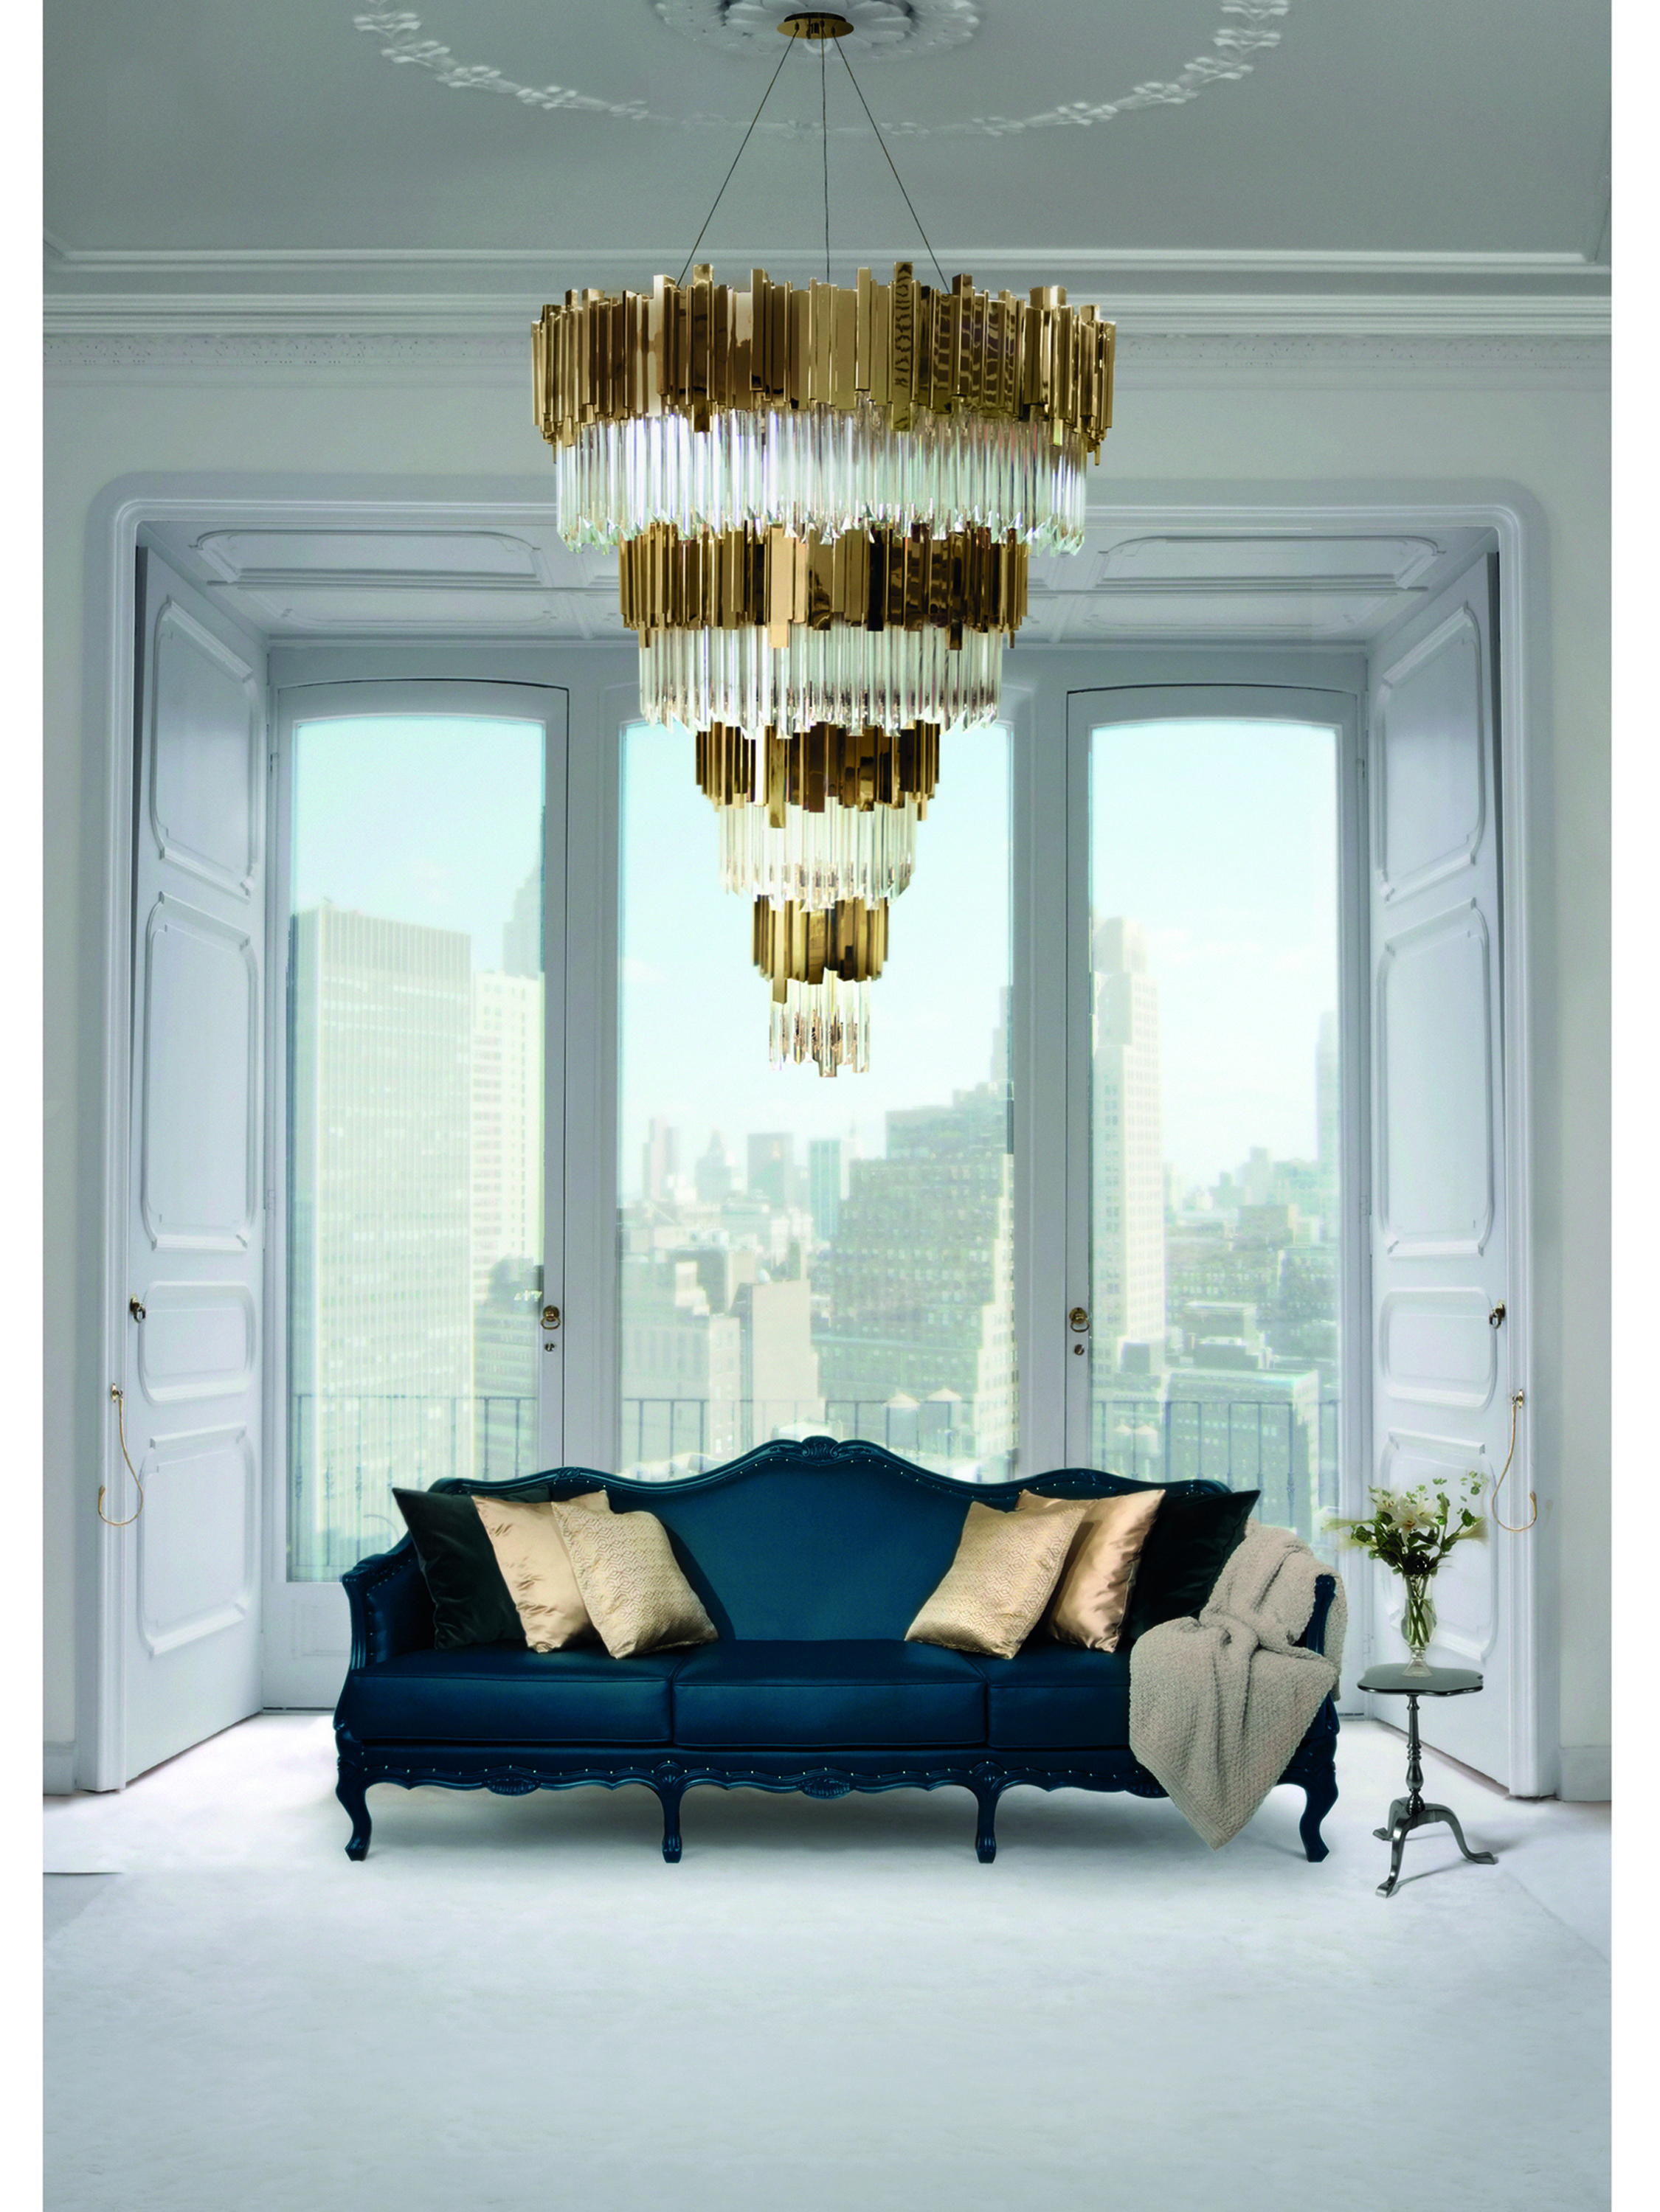 Luxury chandelier foe your living room luxury chandeliers for living room Luxury Chandeliers for Living Room Luxury chandelier foe your living room 1